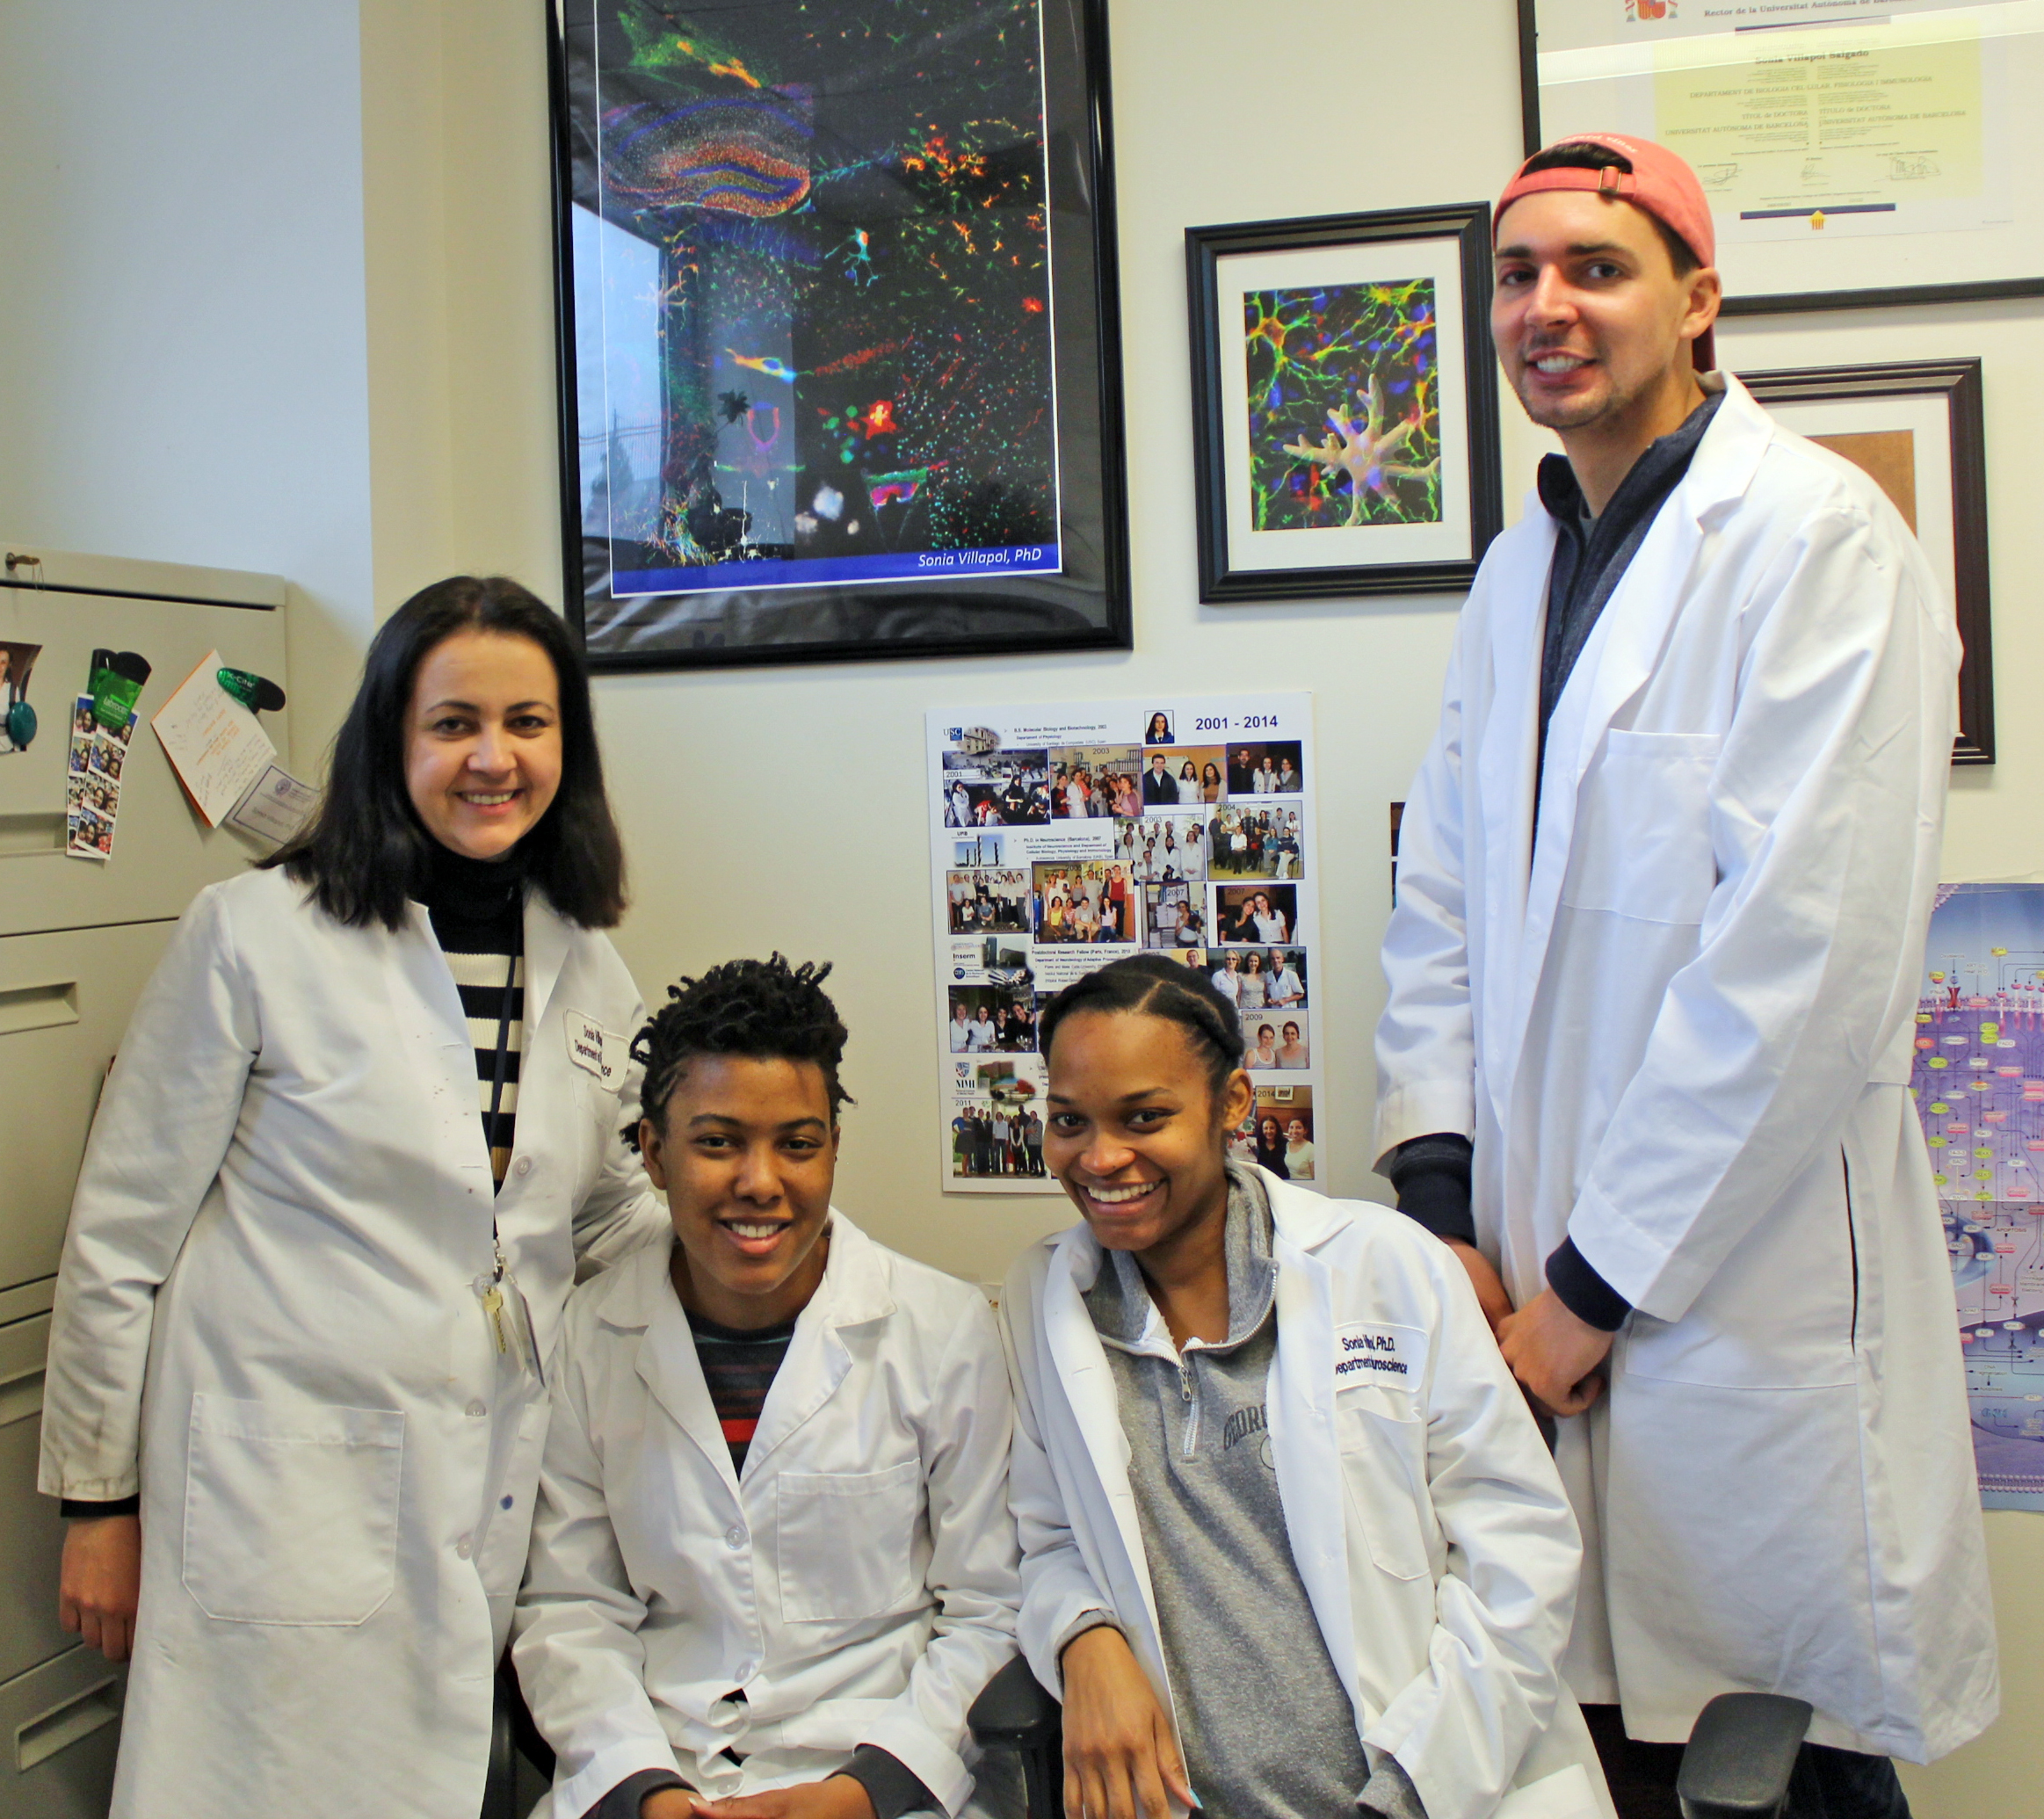 Villapol Lab, May 2017 (Georgetown University, Washington D.C.)  (left to right; Sonia Villapol, Leah Benton, Kershina George, and William Furlow)